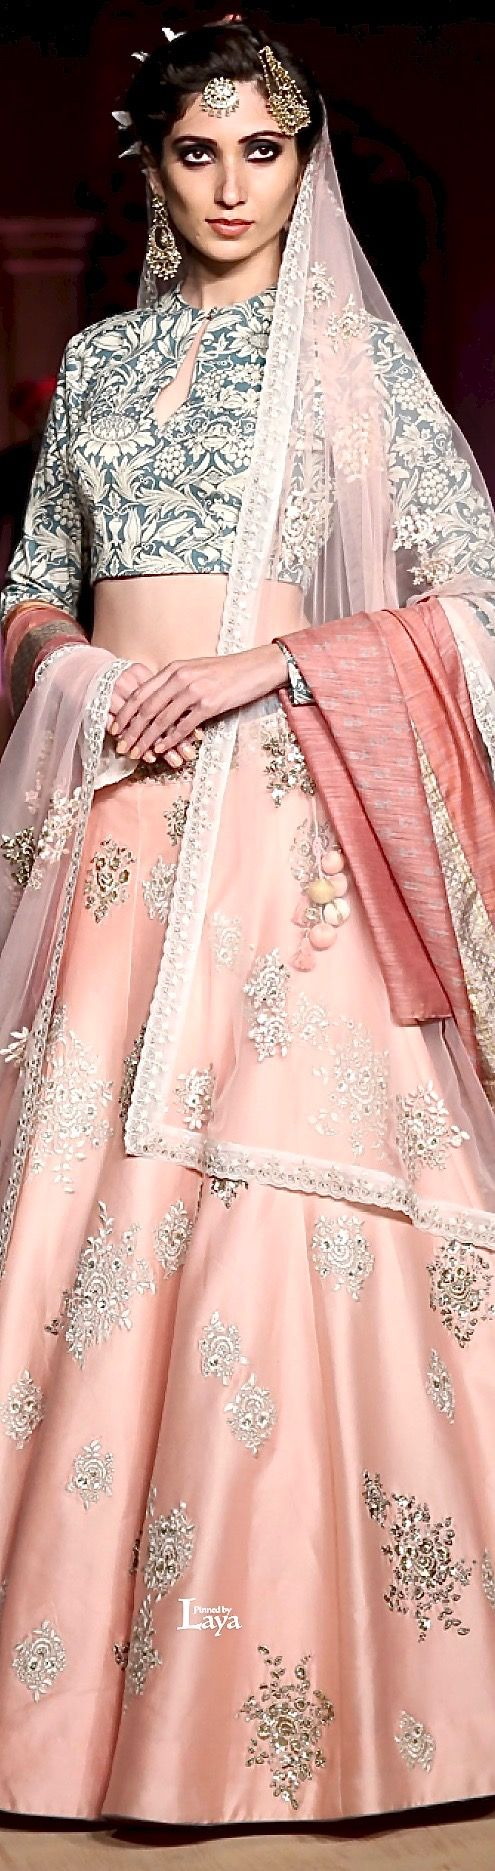 ♔ANJU MODI♔Bajirao Mastani Inspired Collections